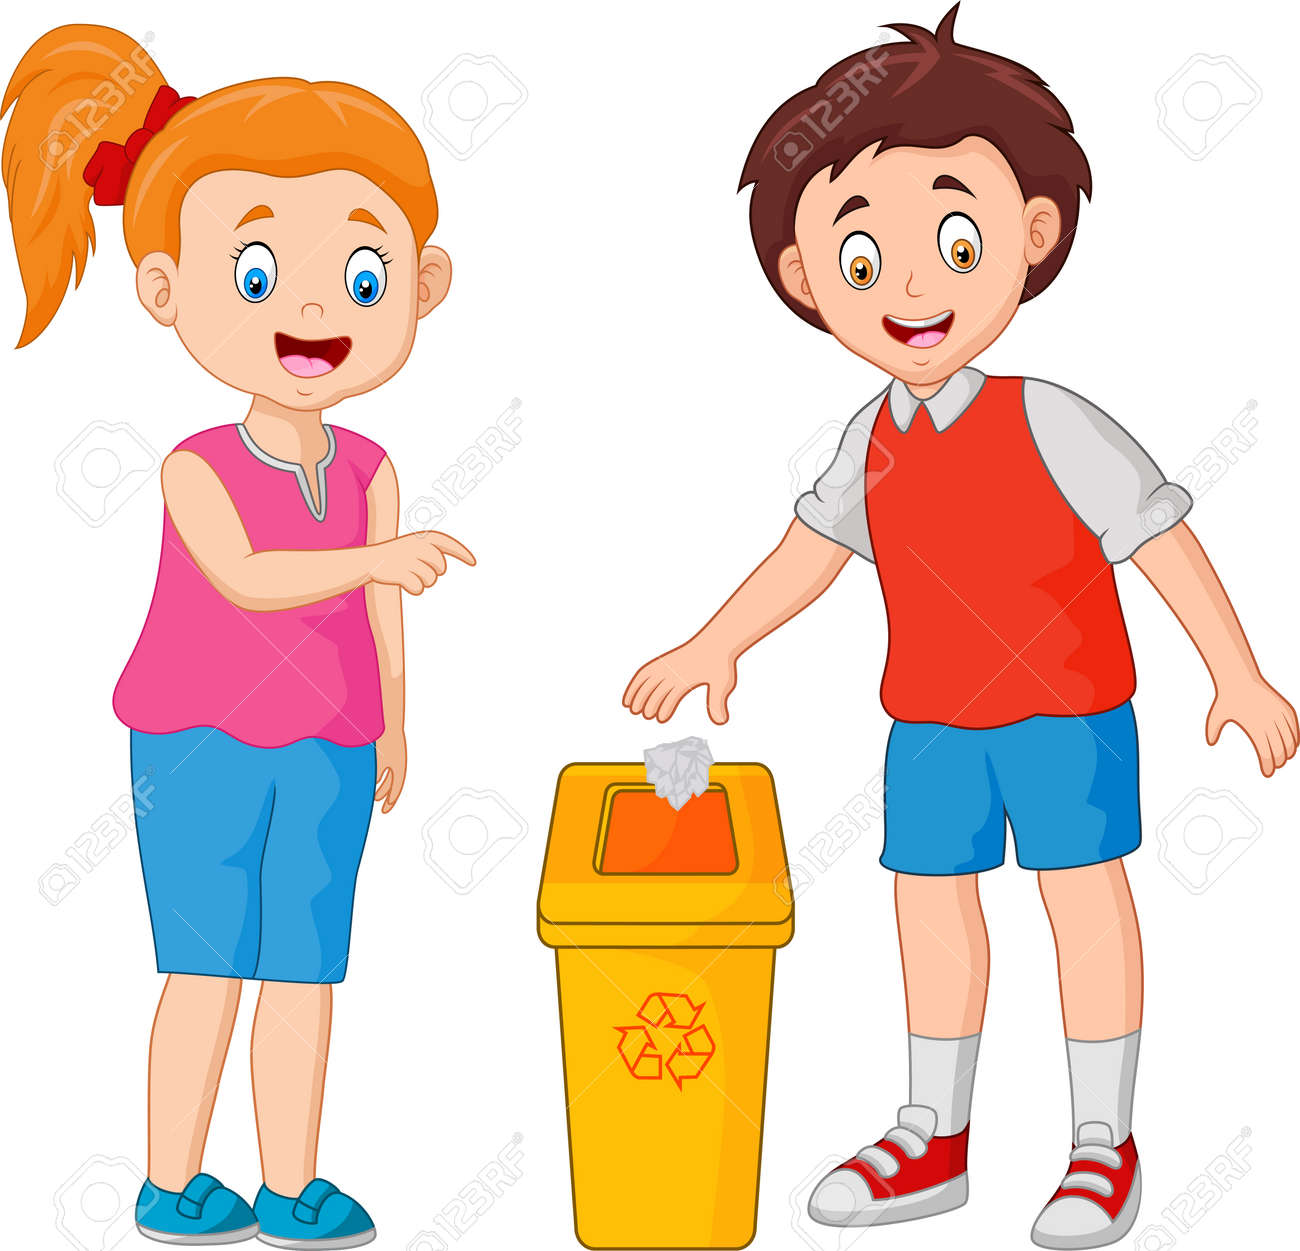 kid throws garbage in the trash - 110770458